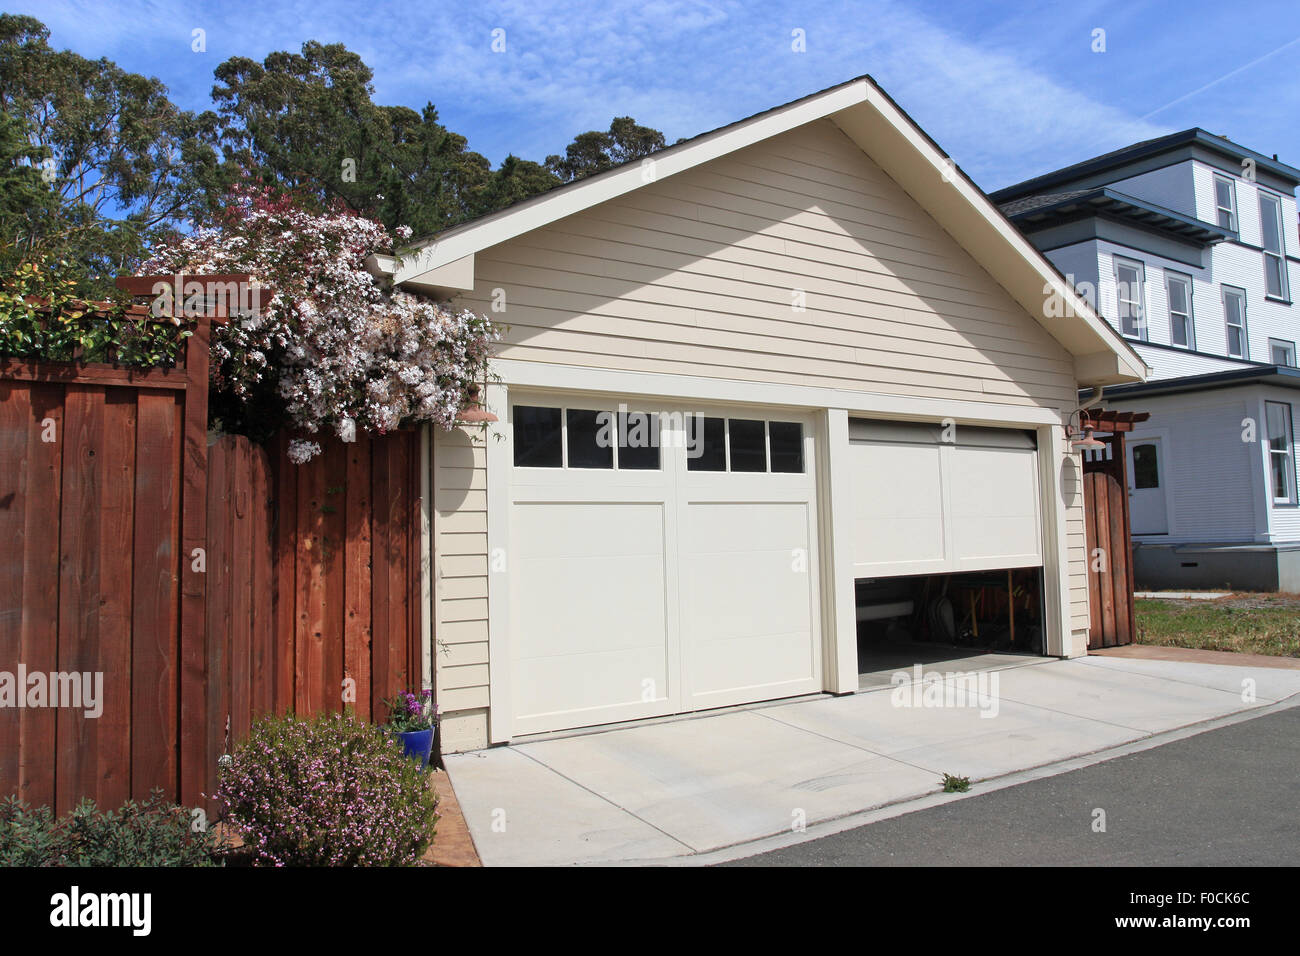 Garage Door Open Stock Photos Garage Door Open Stock Images Alamy